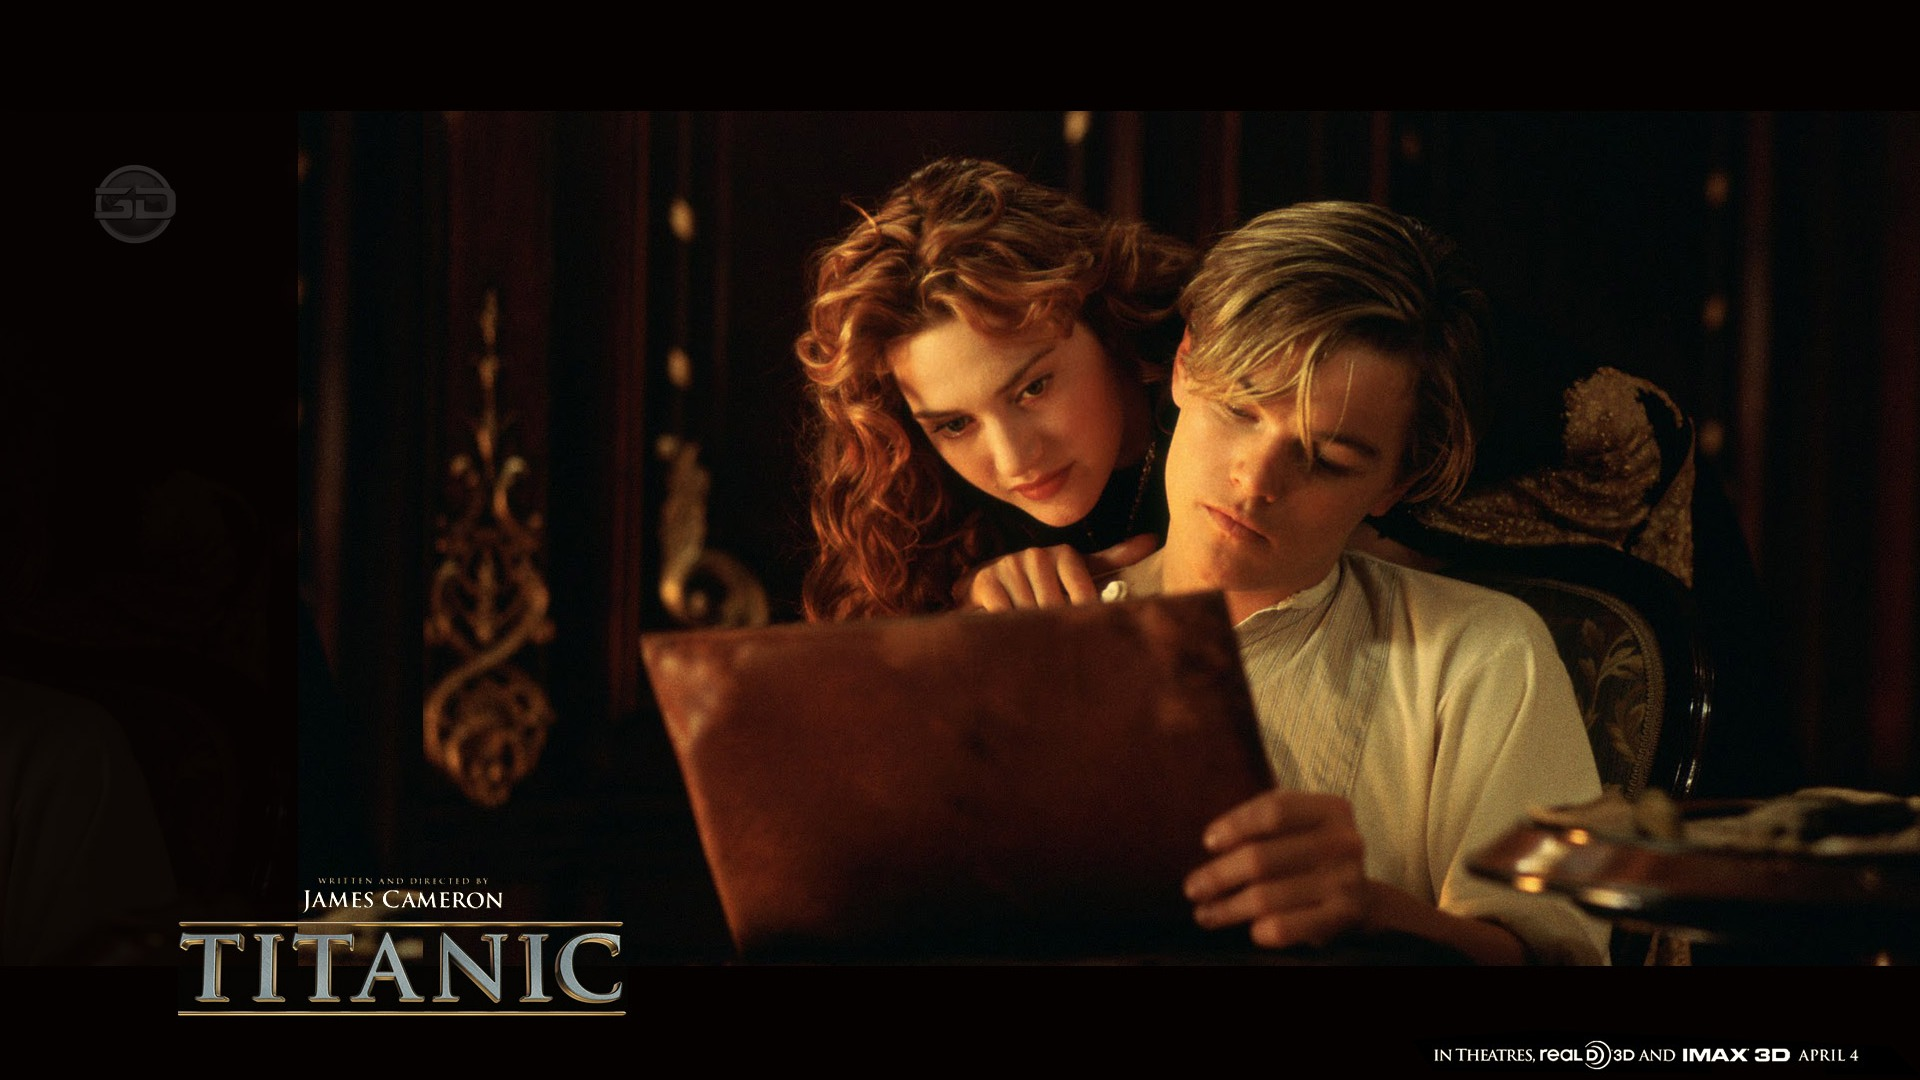 Titanic-Theme-Song-7